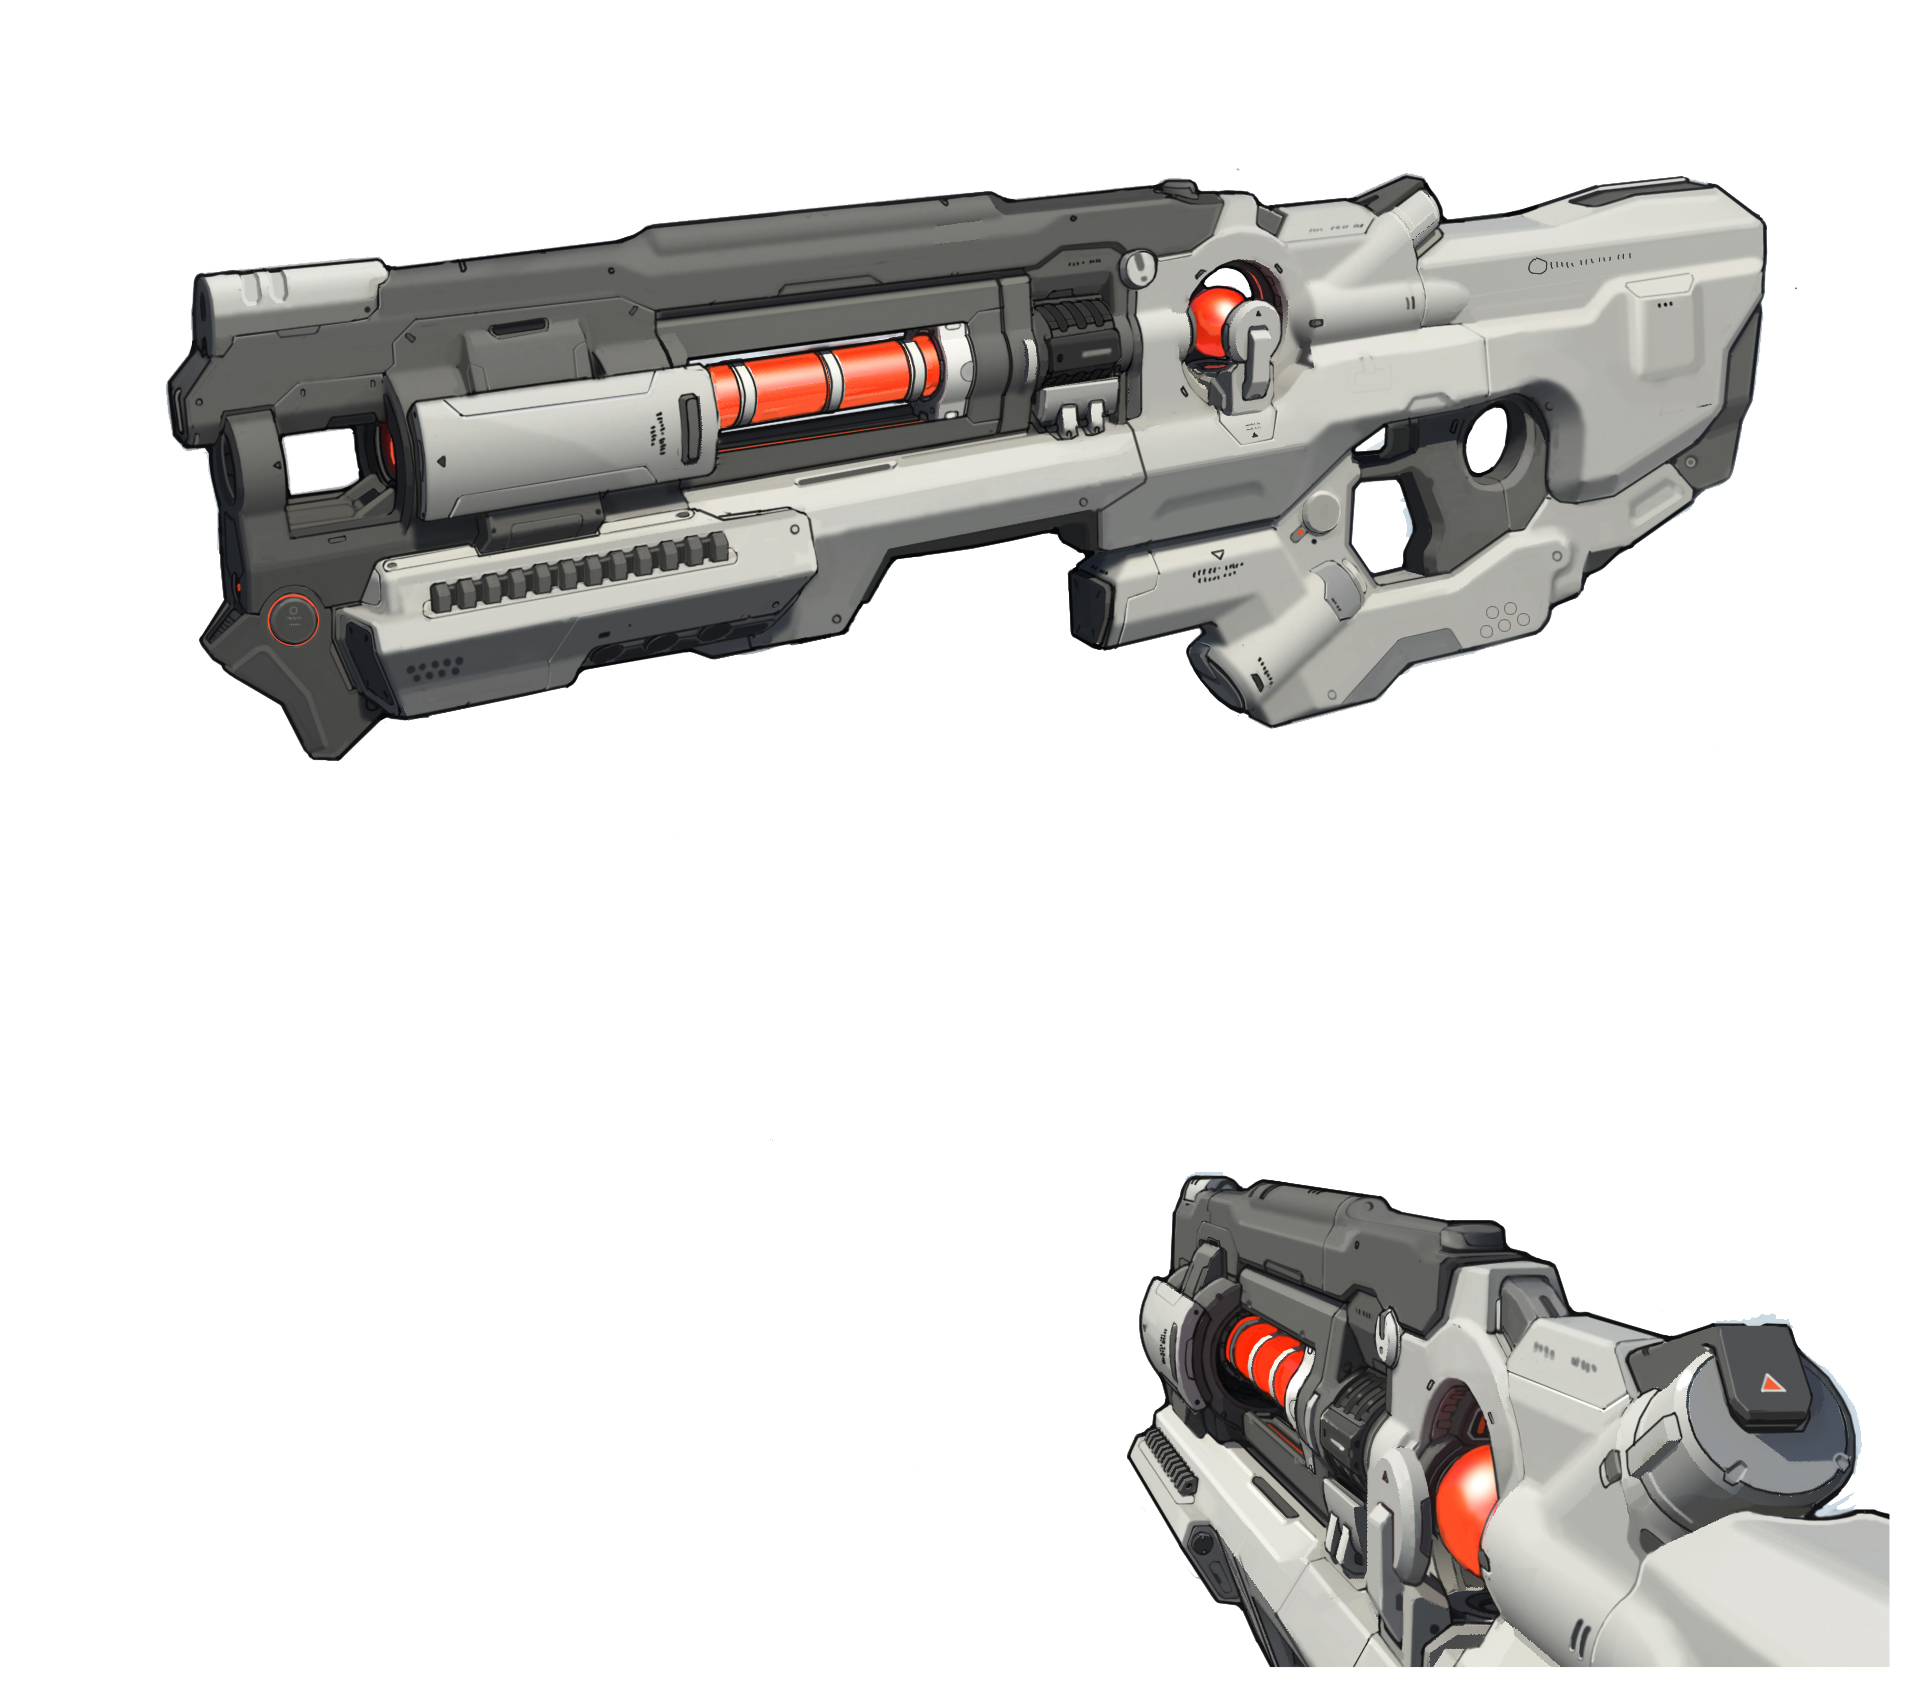 Here's everything you need to know about Doom's badass guns